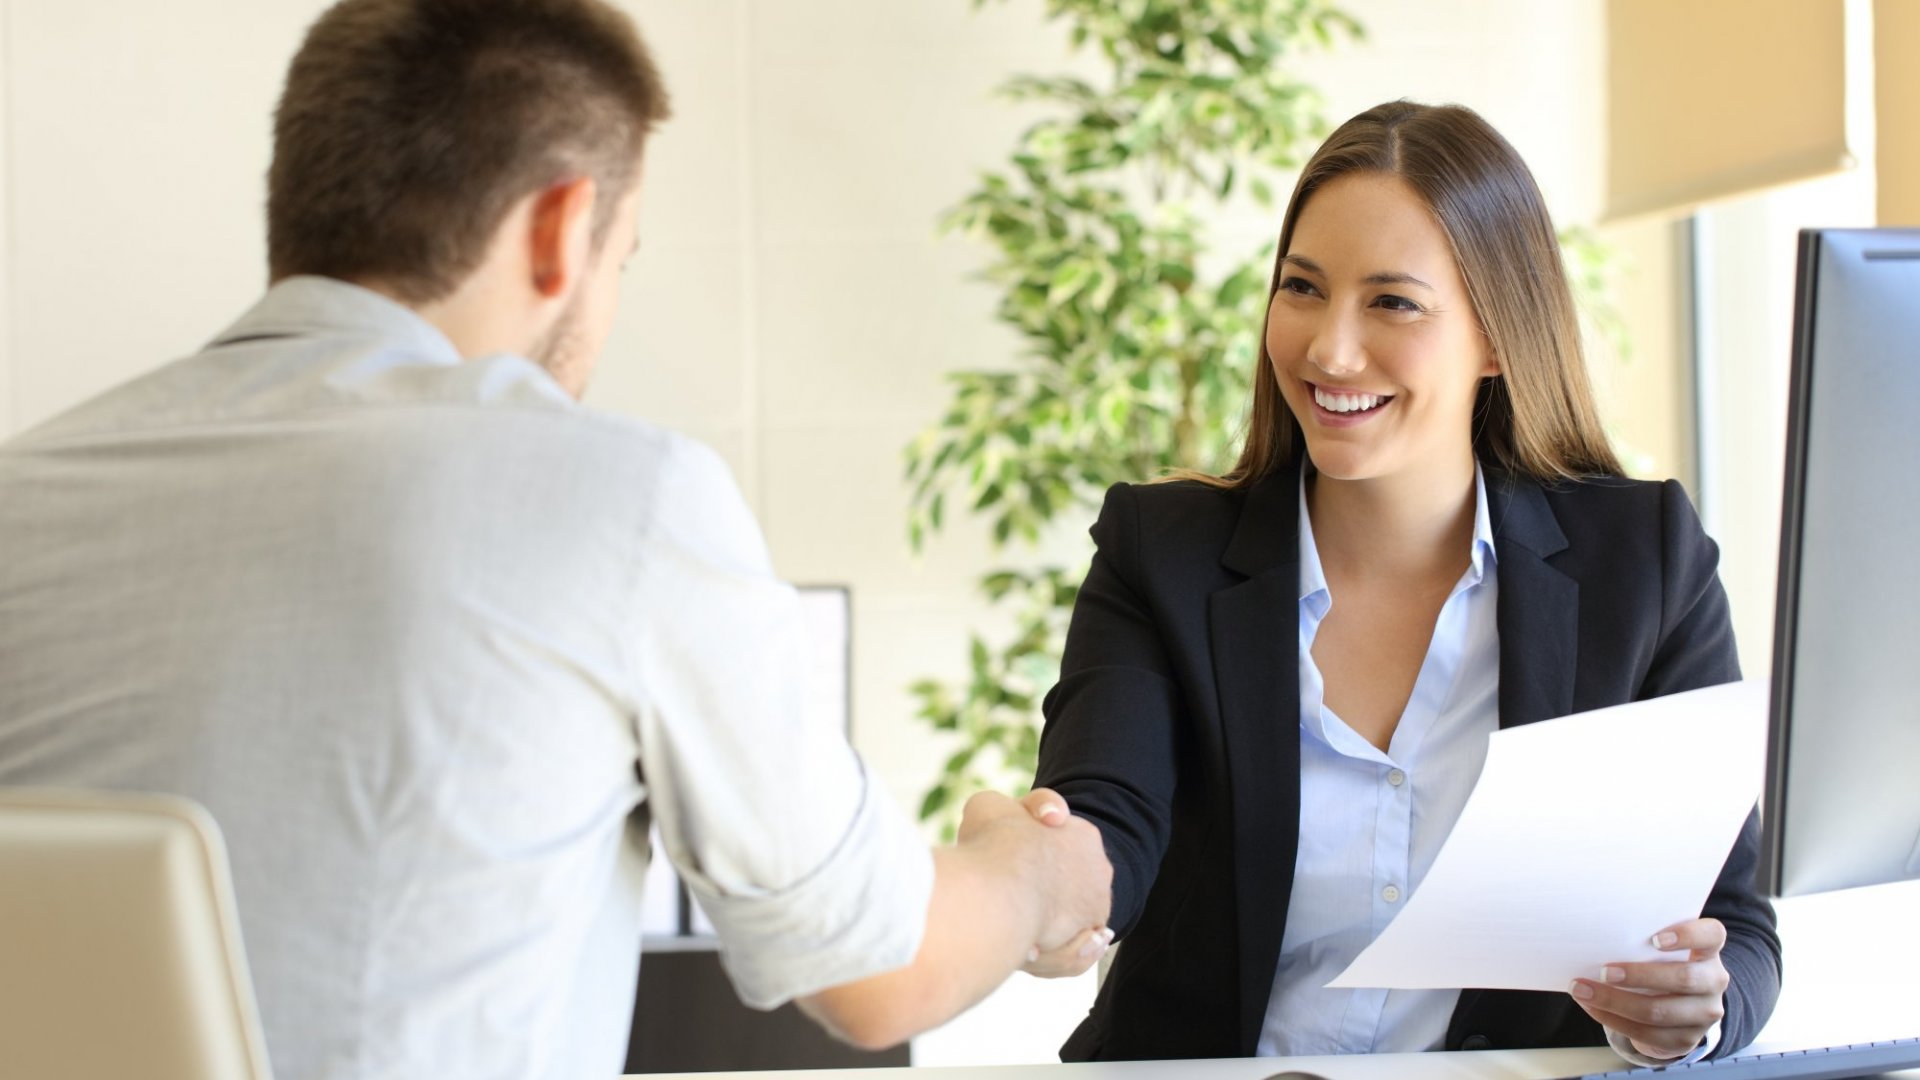 7 Smart Vetting Strategies When Hiring for an Executive-Level Position